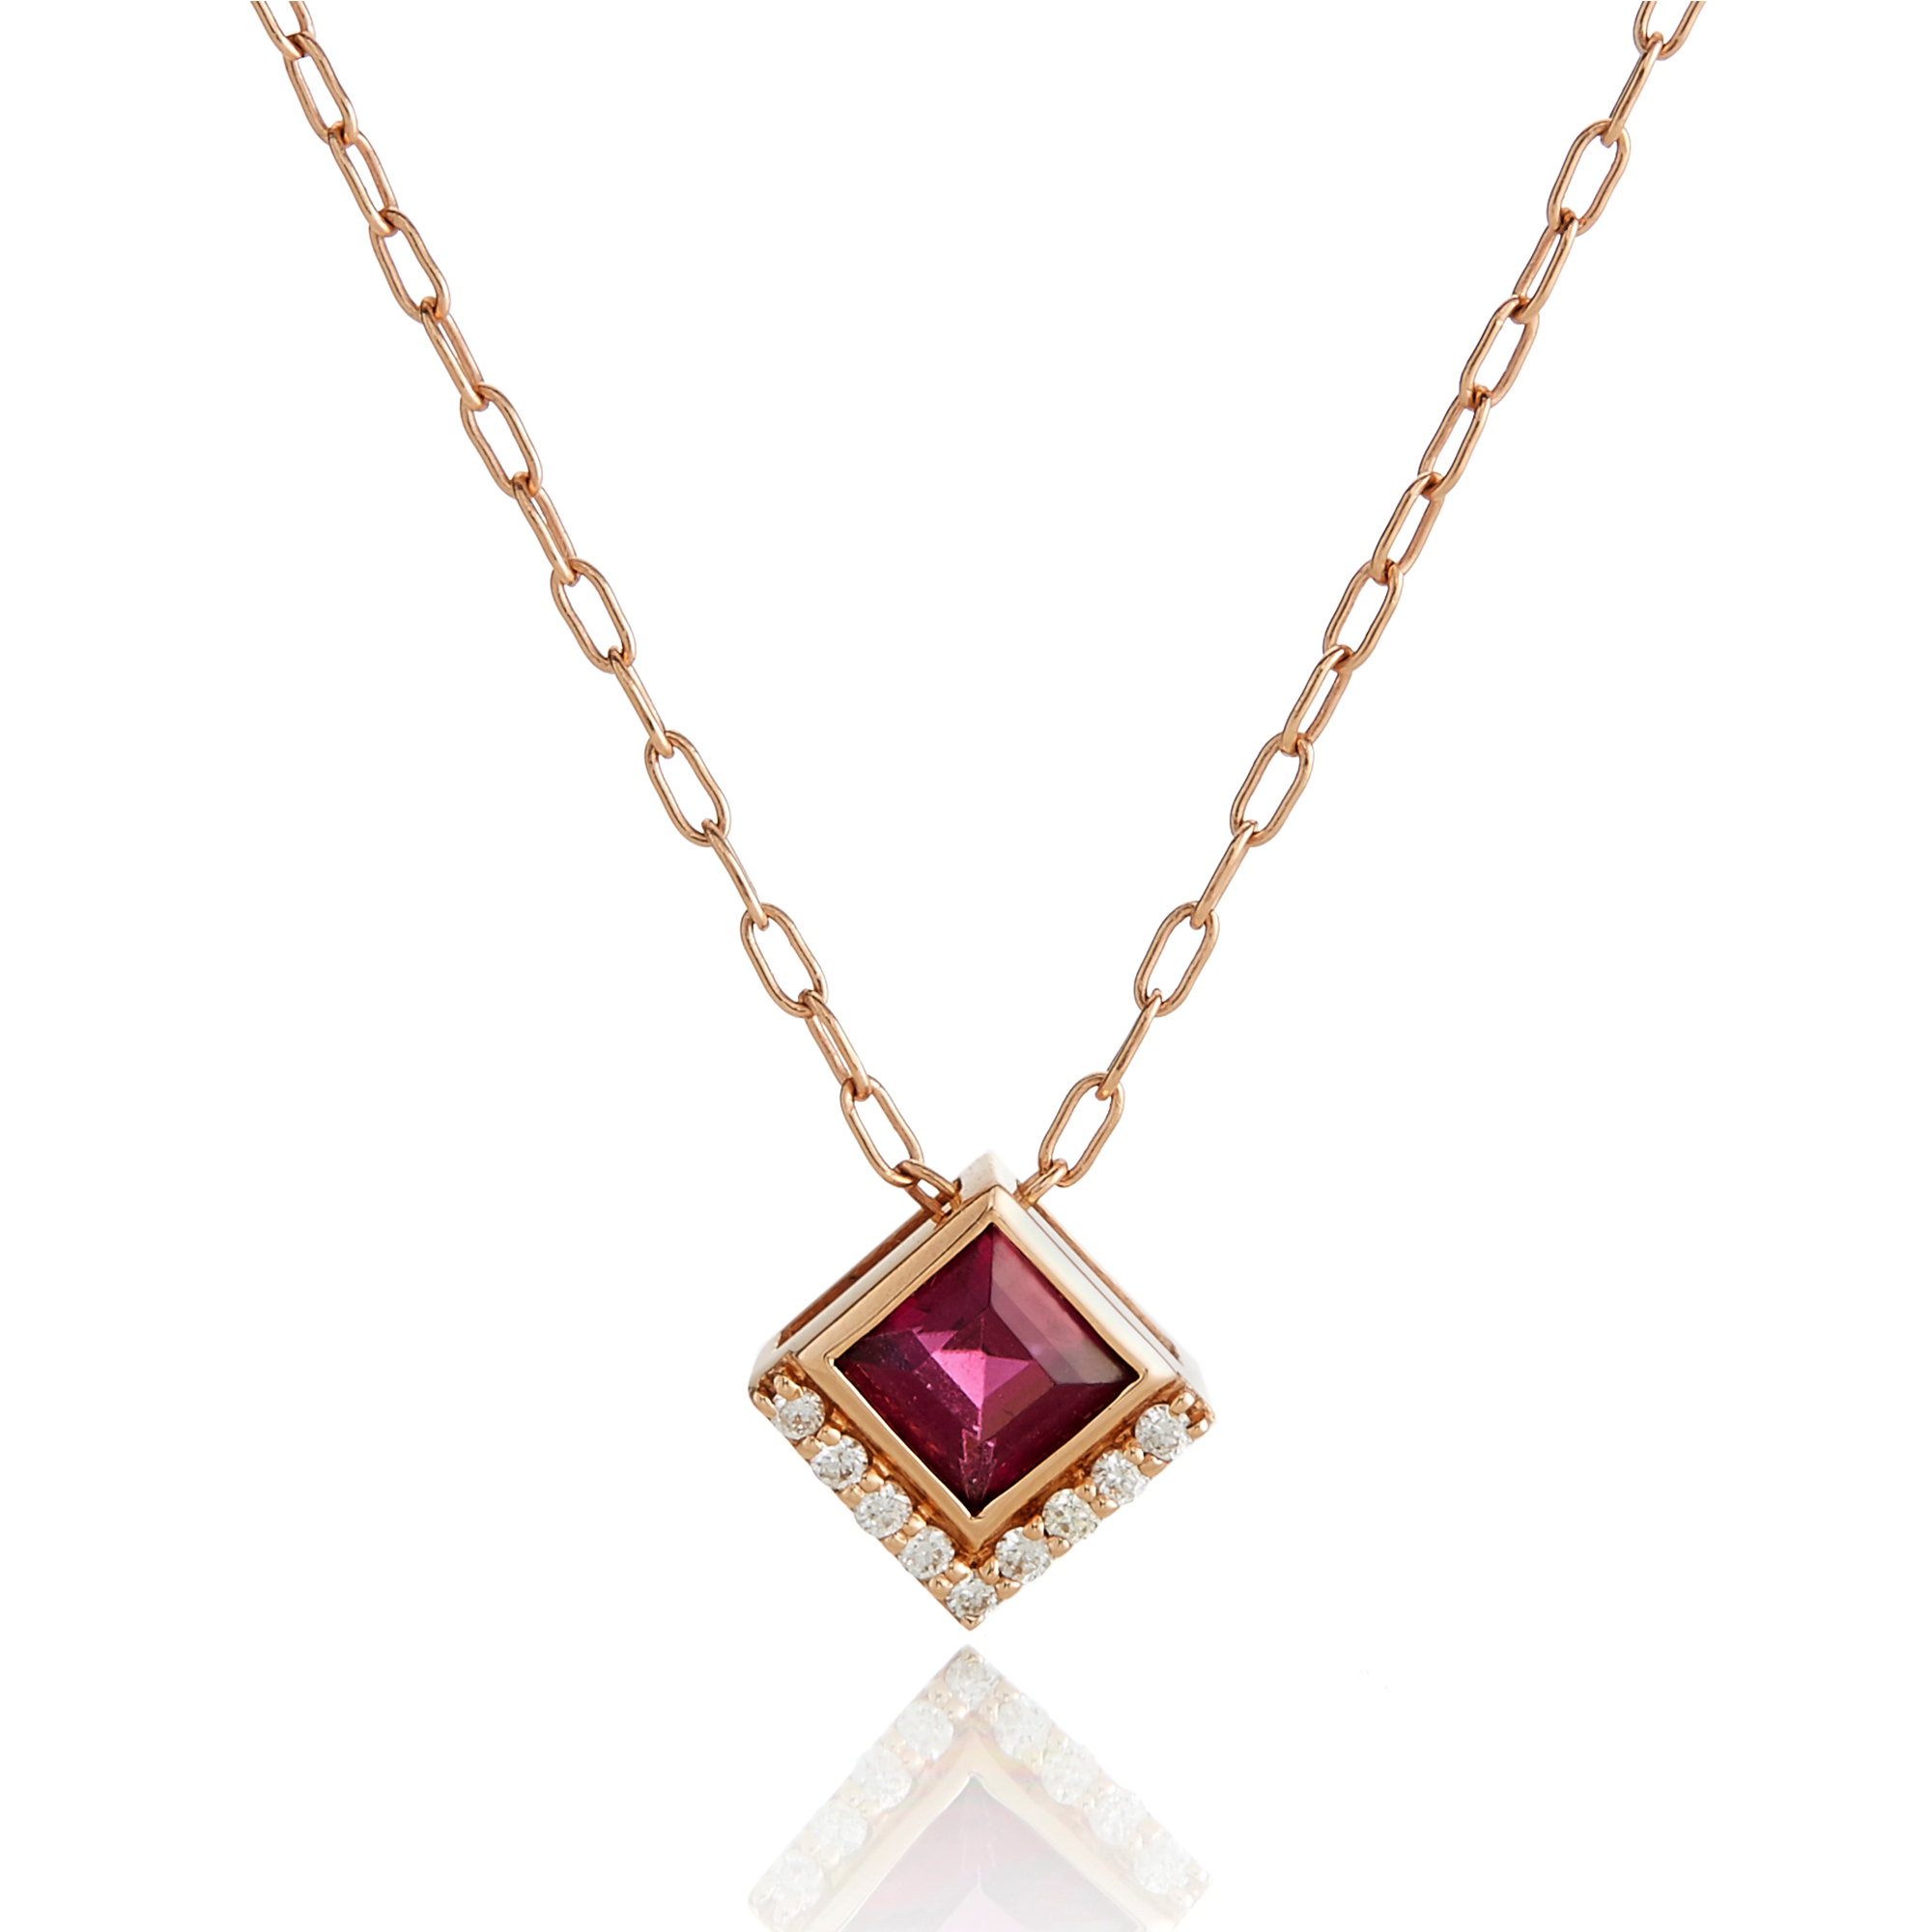 Jane Taylor Rhodolite Garnet & Diamond Small Square Necklace